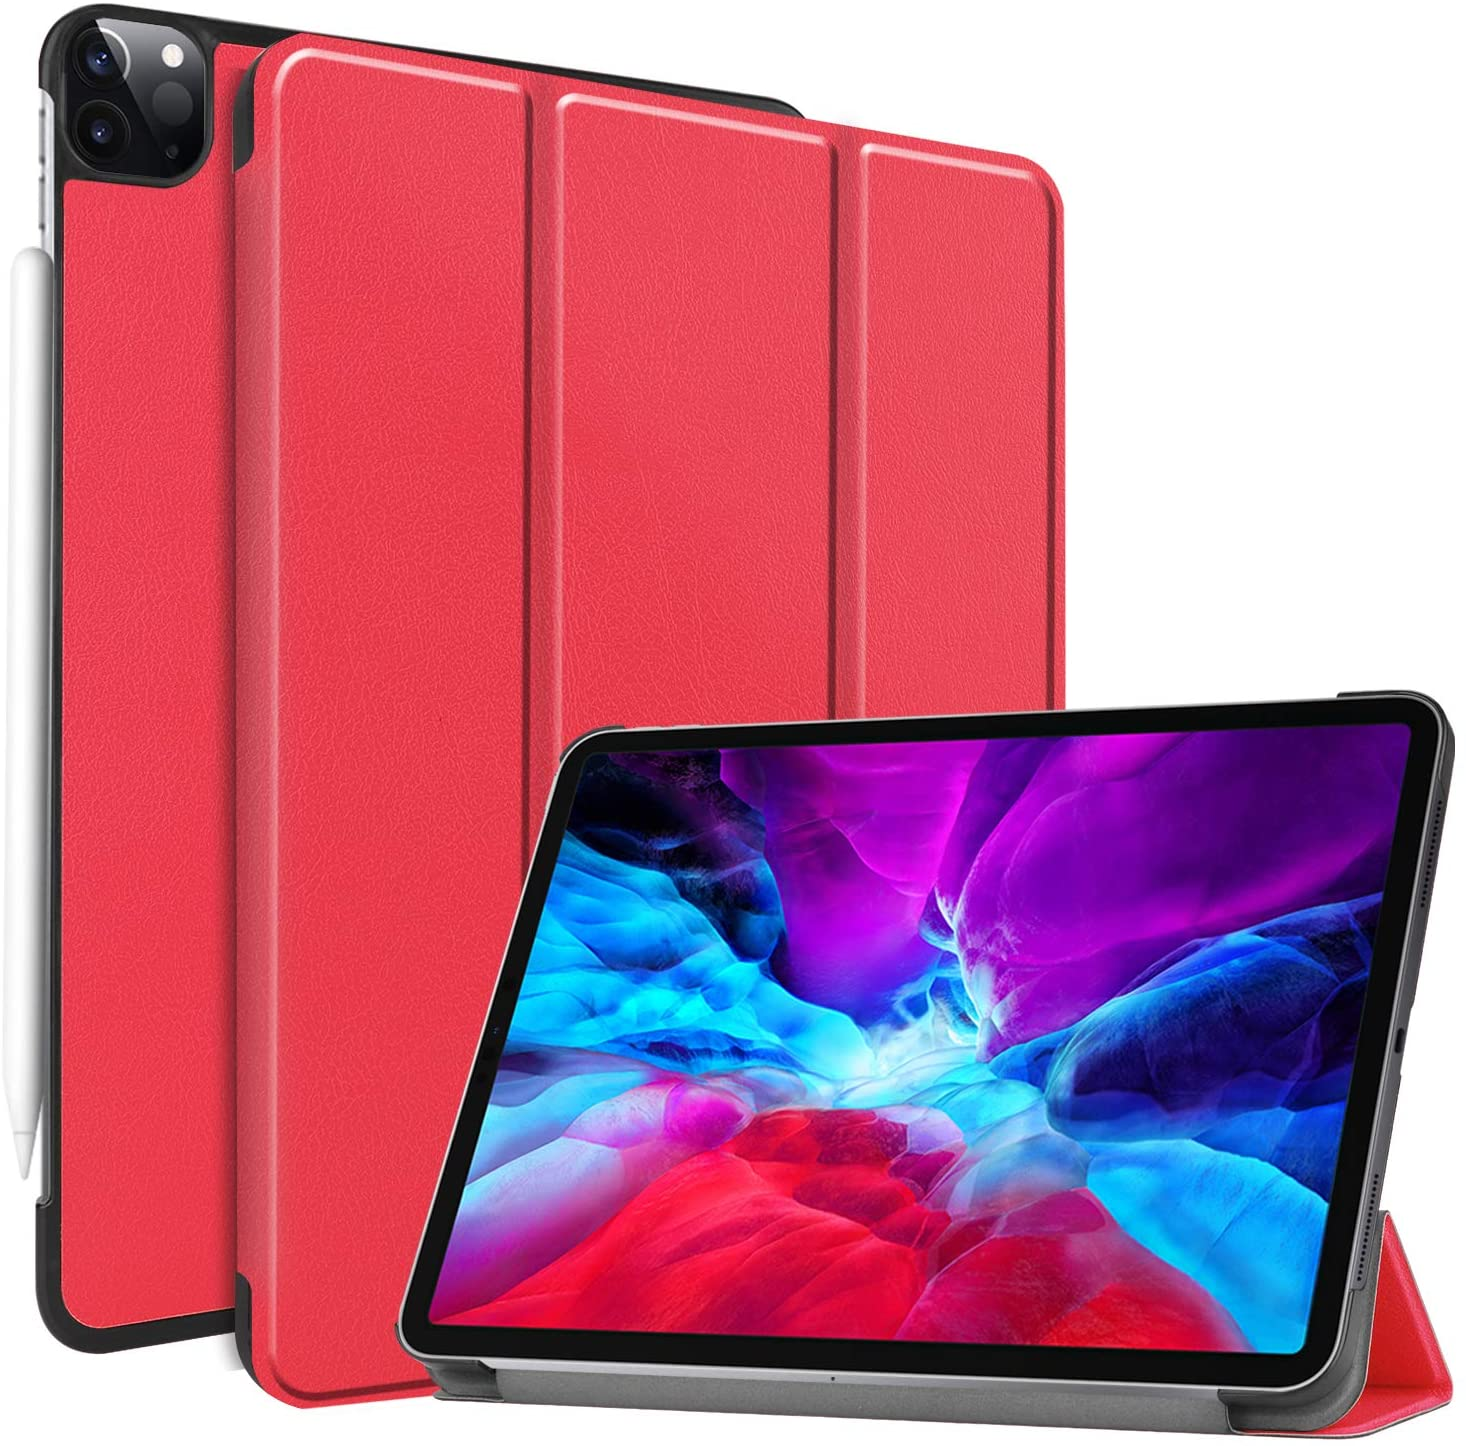 Smart Case for New iPad Pro 11 inch 2020 Case 2nd Generation, Ratesell Lightweight Smart Trifold Stand Case Cover with Auto Sleep/Wake for iPad Pro 11 2020/2018 / Model A2068, A2230 Red